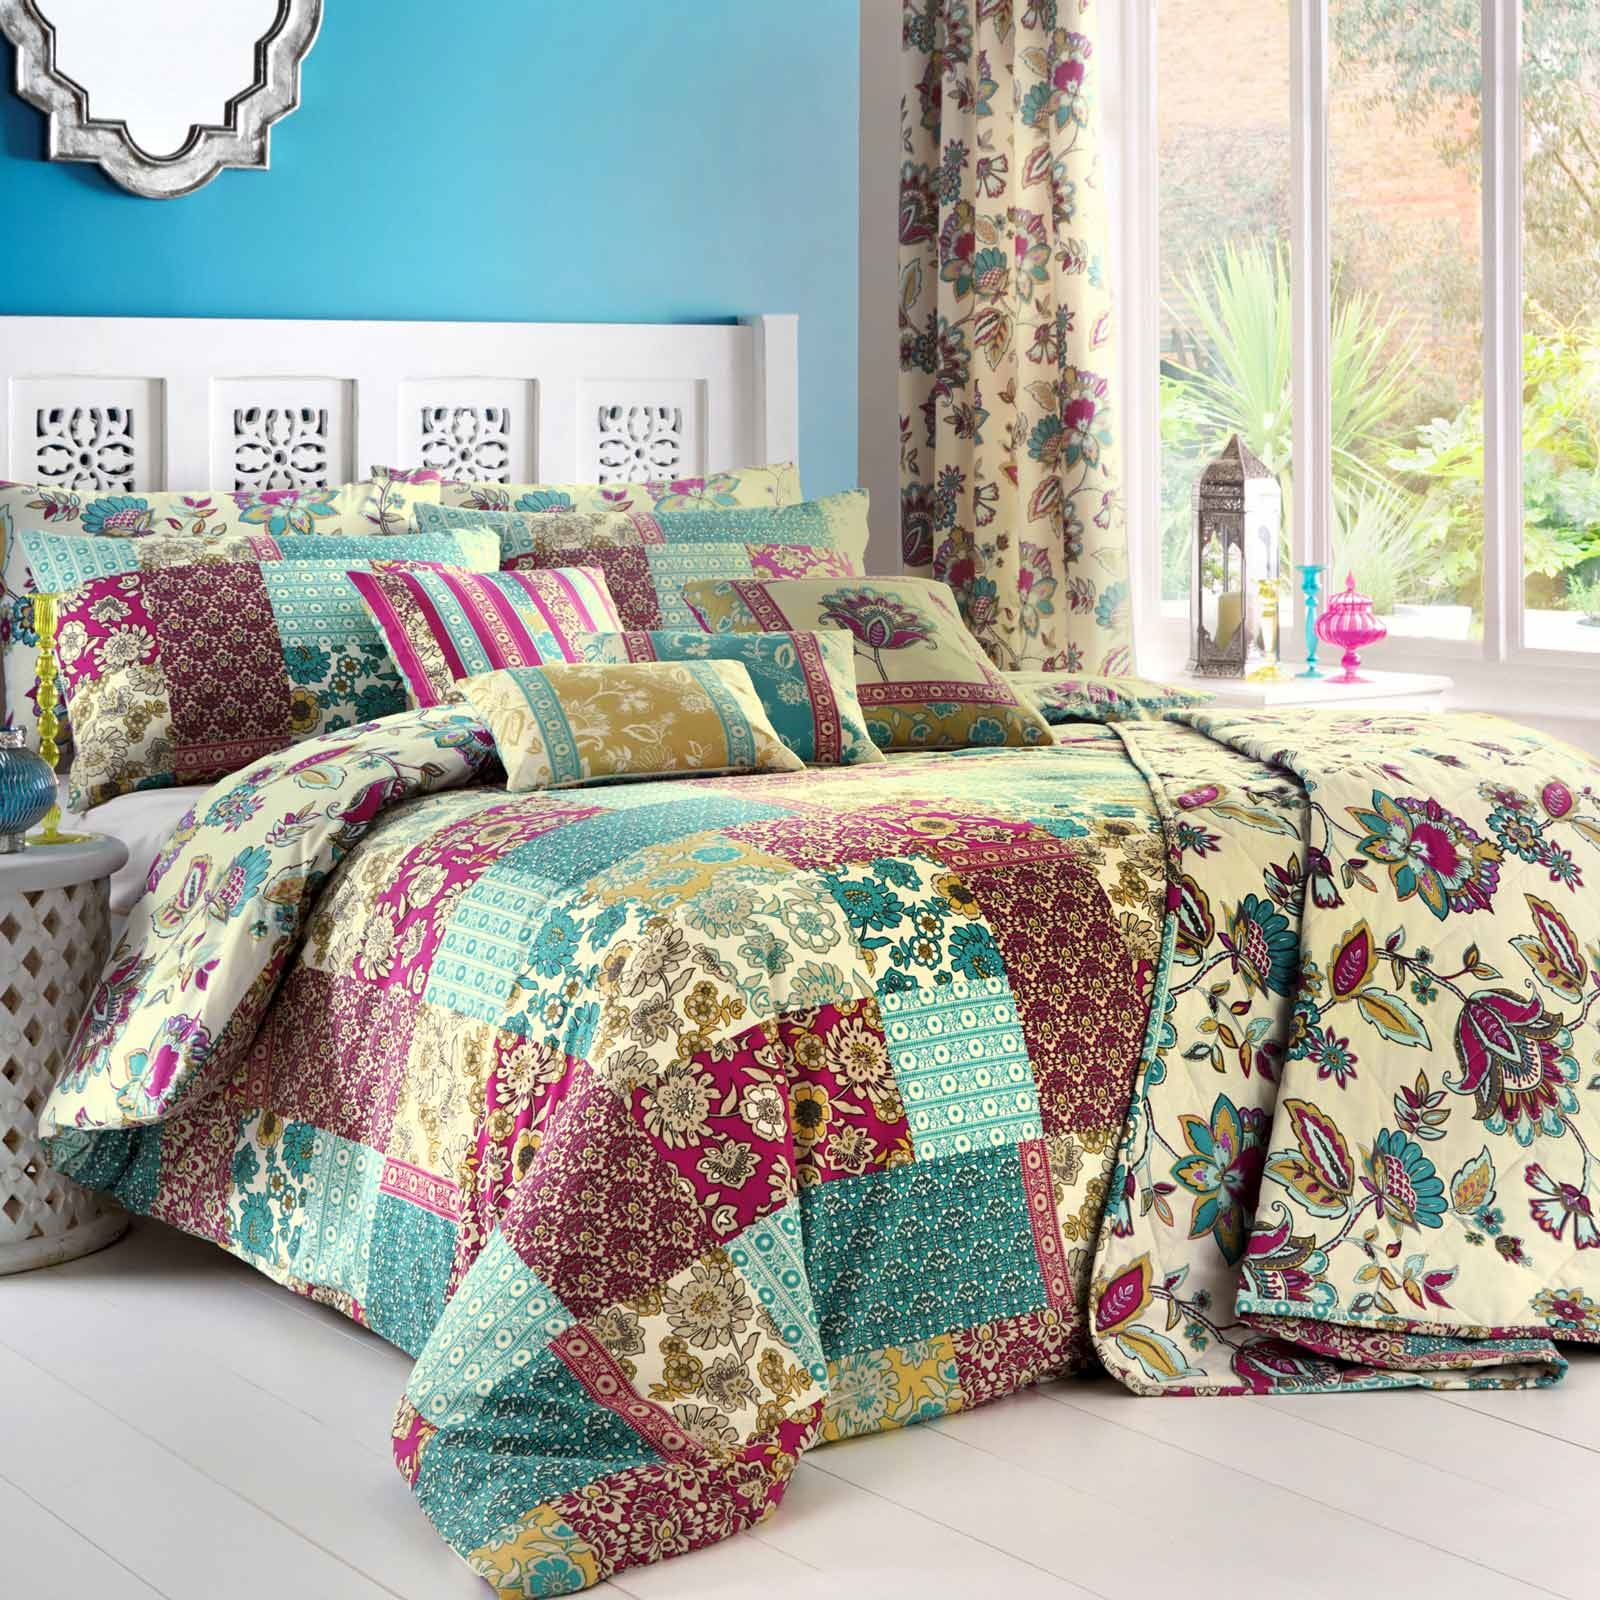 Teal Quilt Cover Teal Duvet Covers Marinelli Vintage Floral Printed Easy